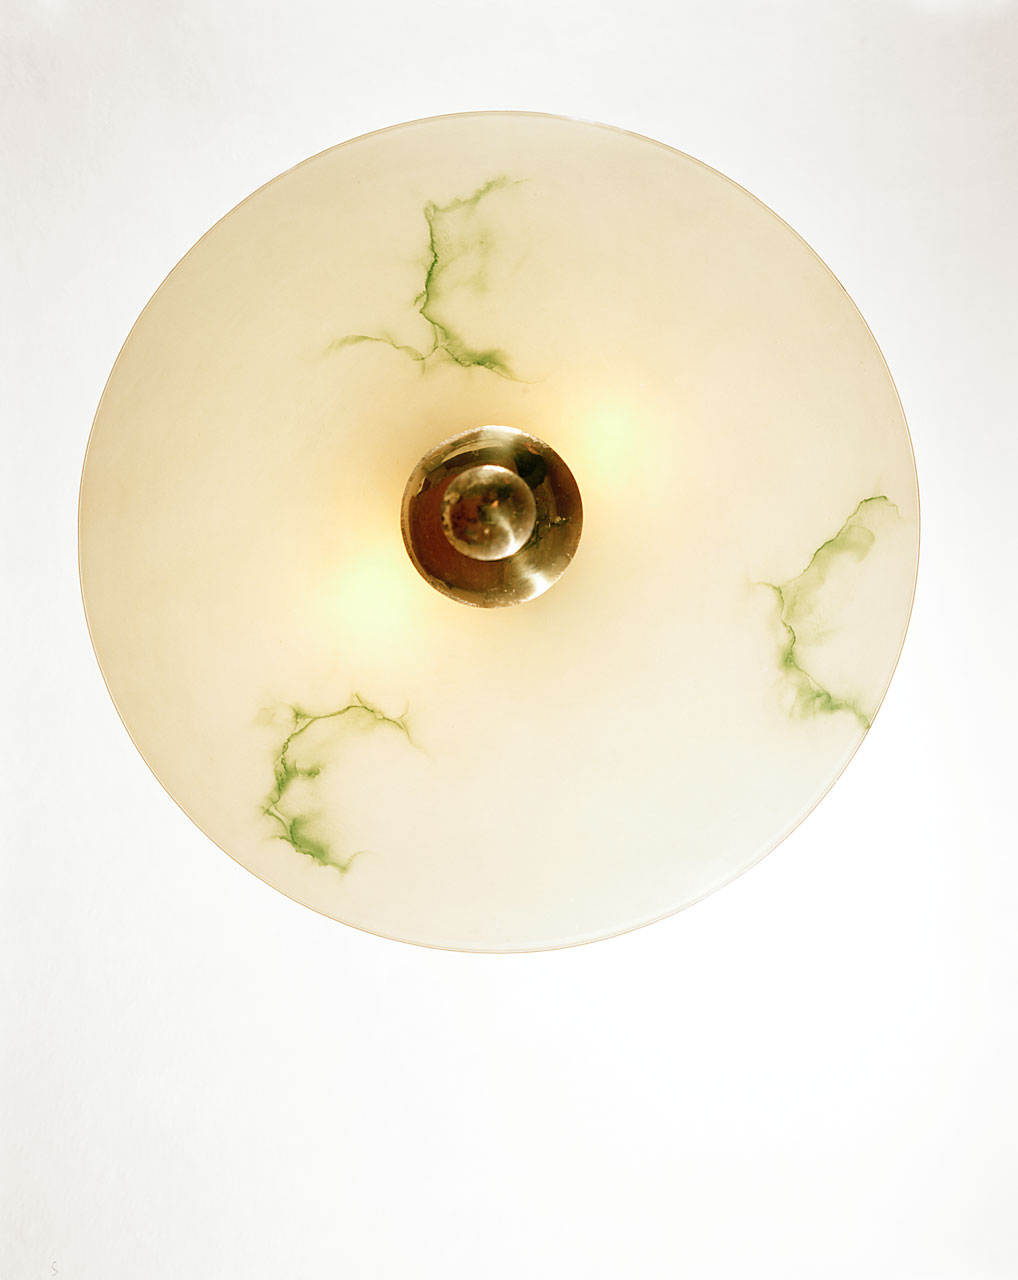 still-life-photography-Sabine-Scheer-ceiling-lamp-light